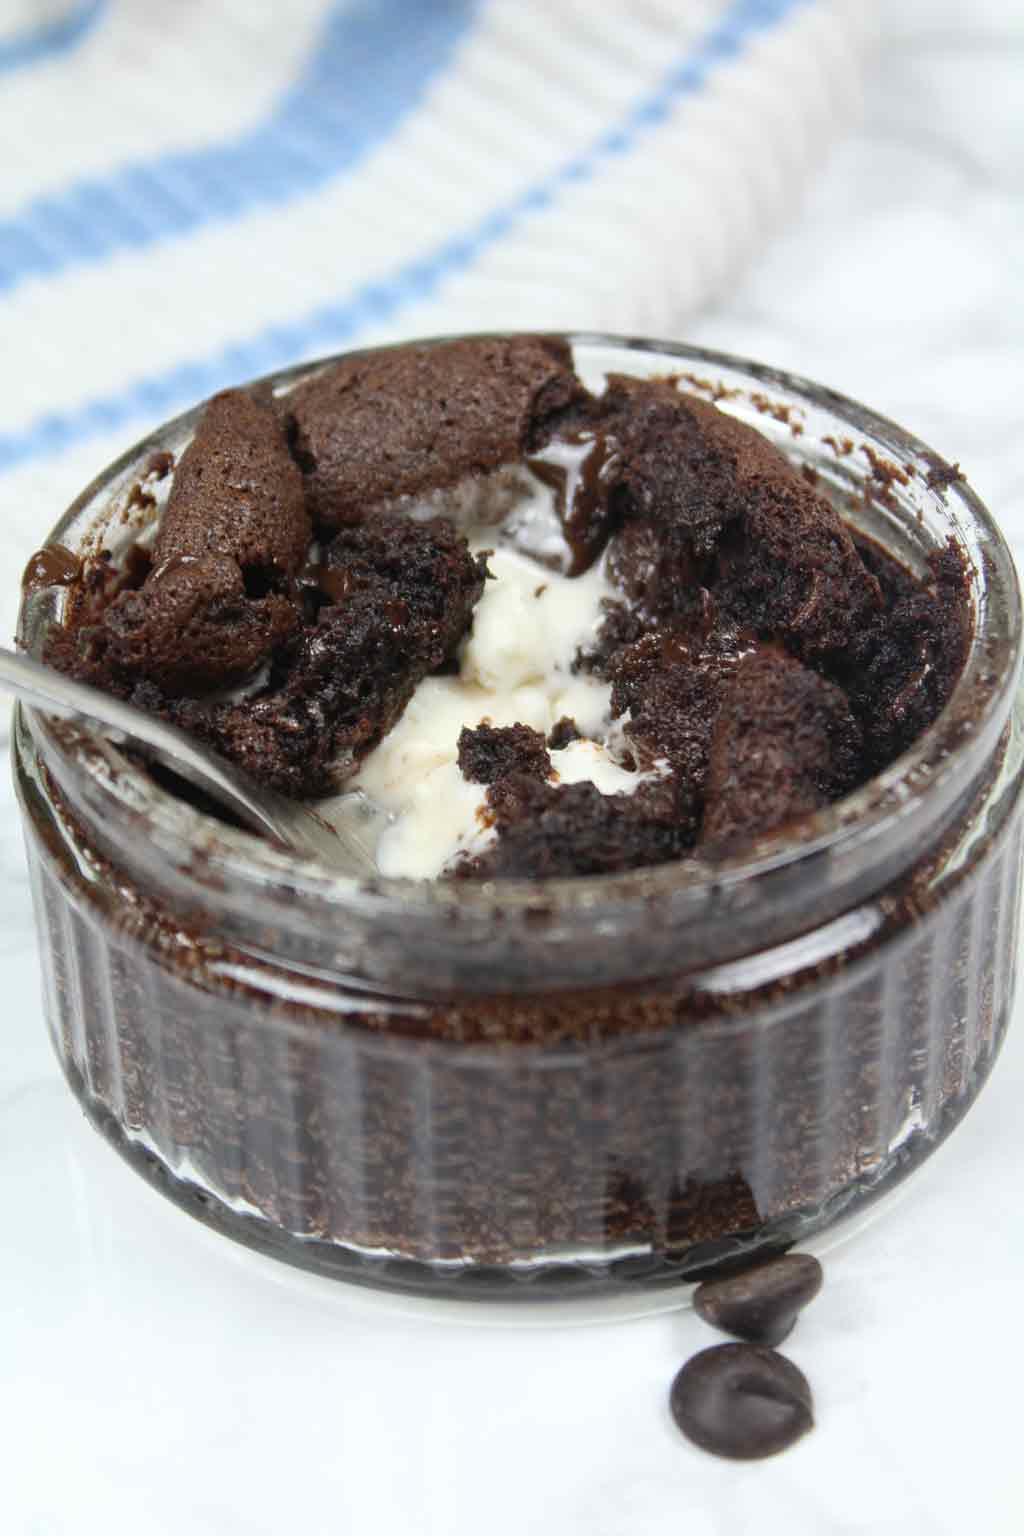 half eaten mug brownie with melted ice cream in the center